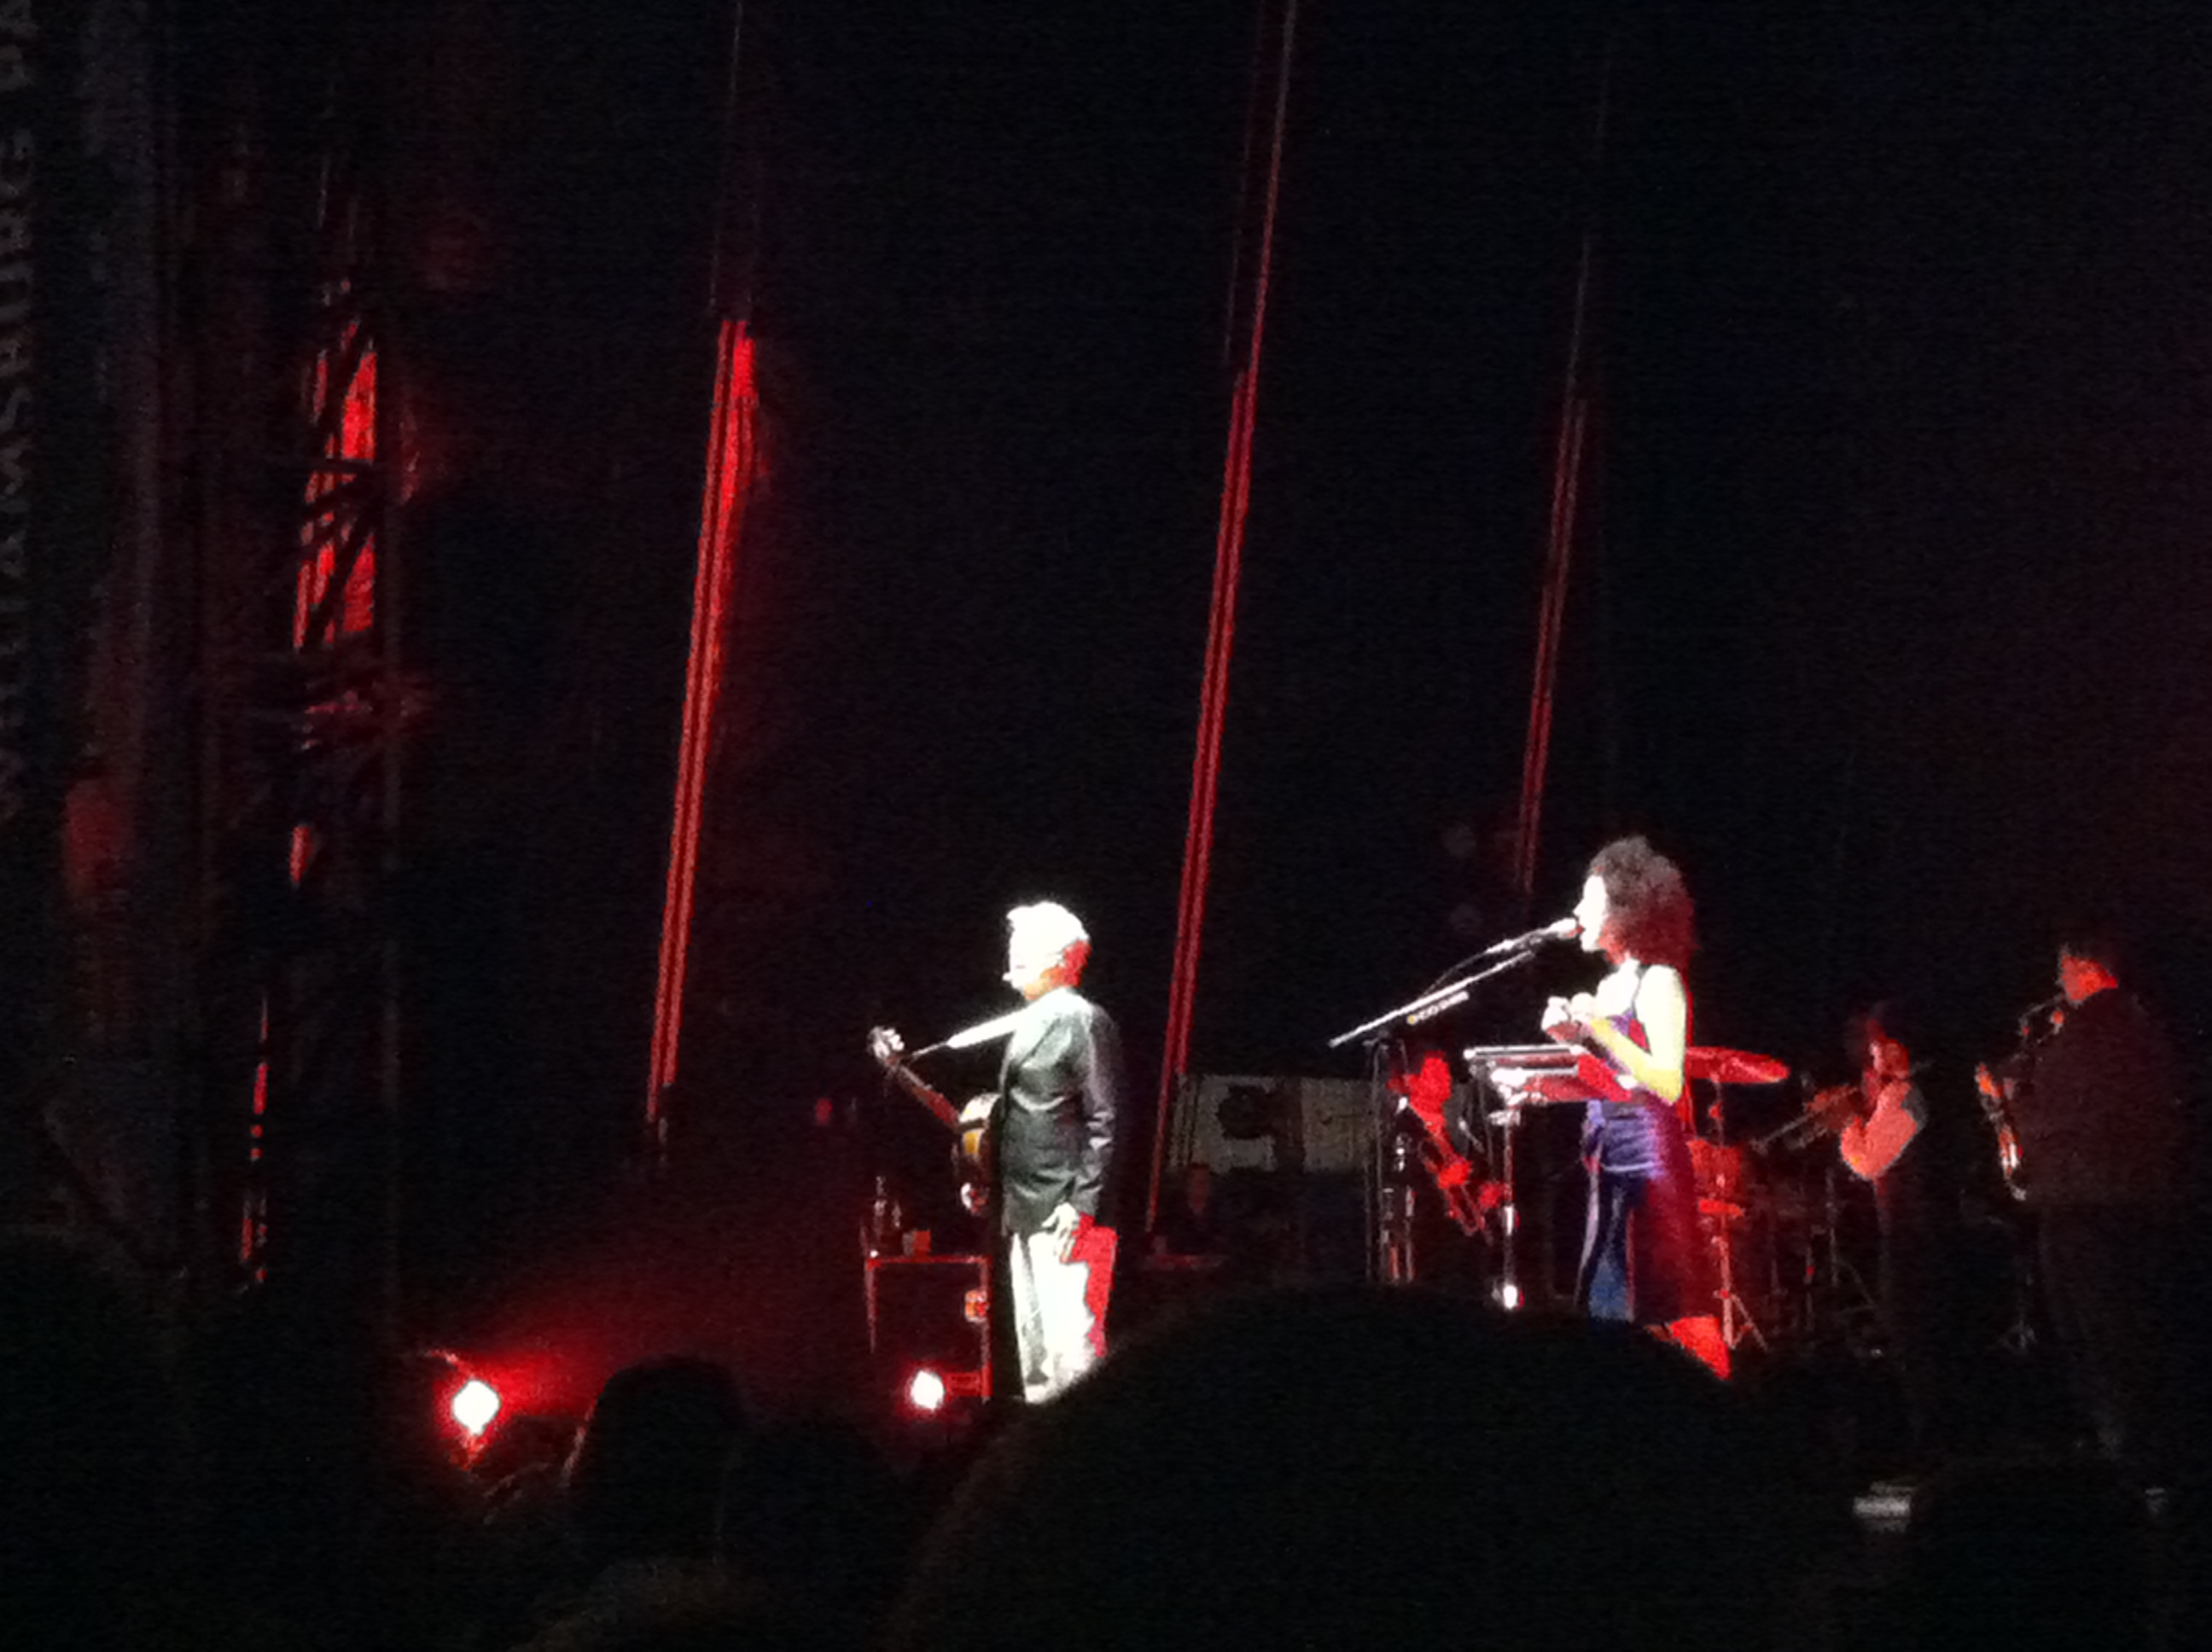 St. Vincent & David Byrne @ Williamsburg Park, c/o Michael Boyce